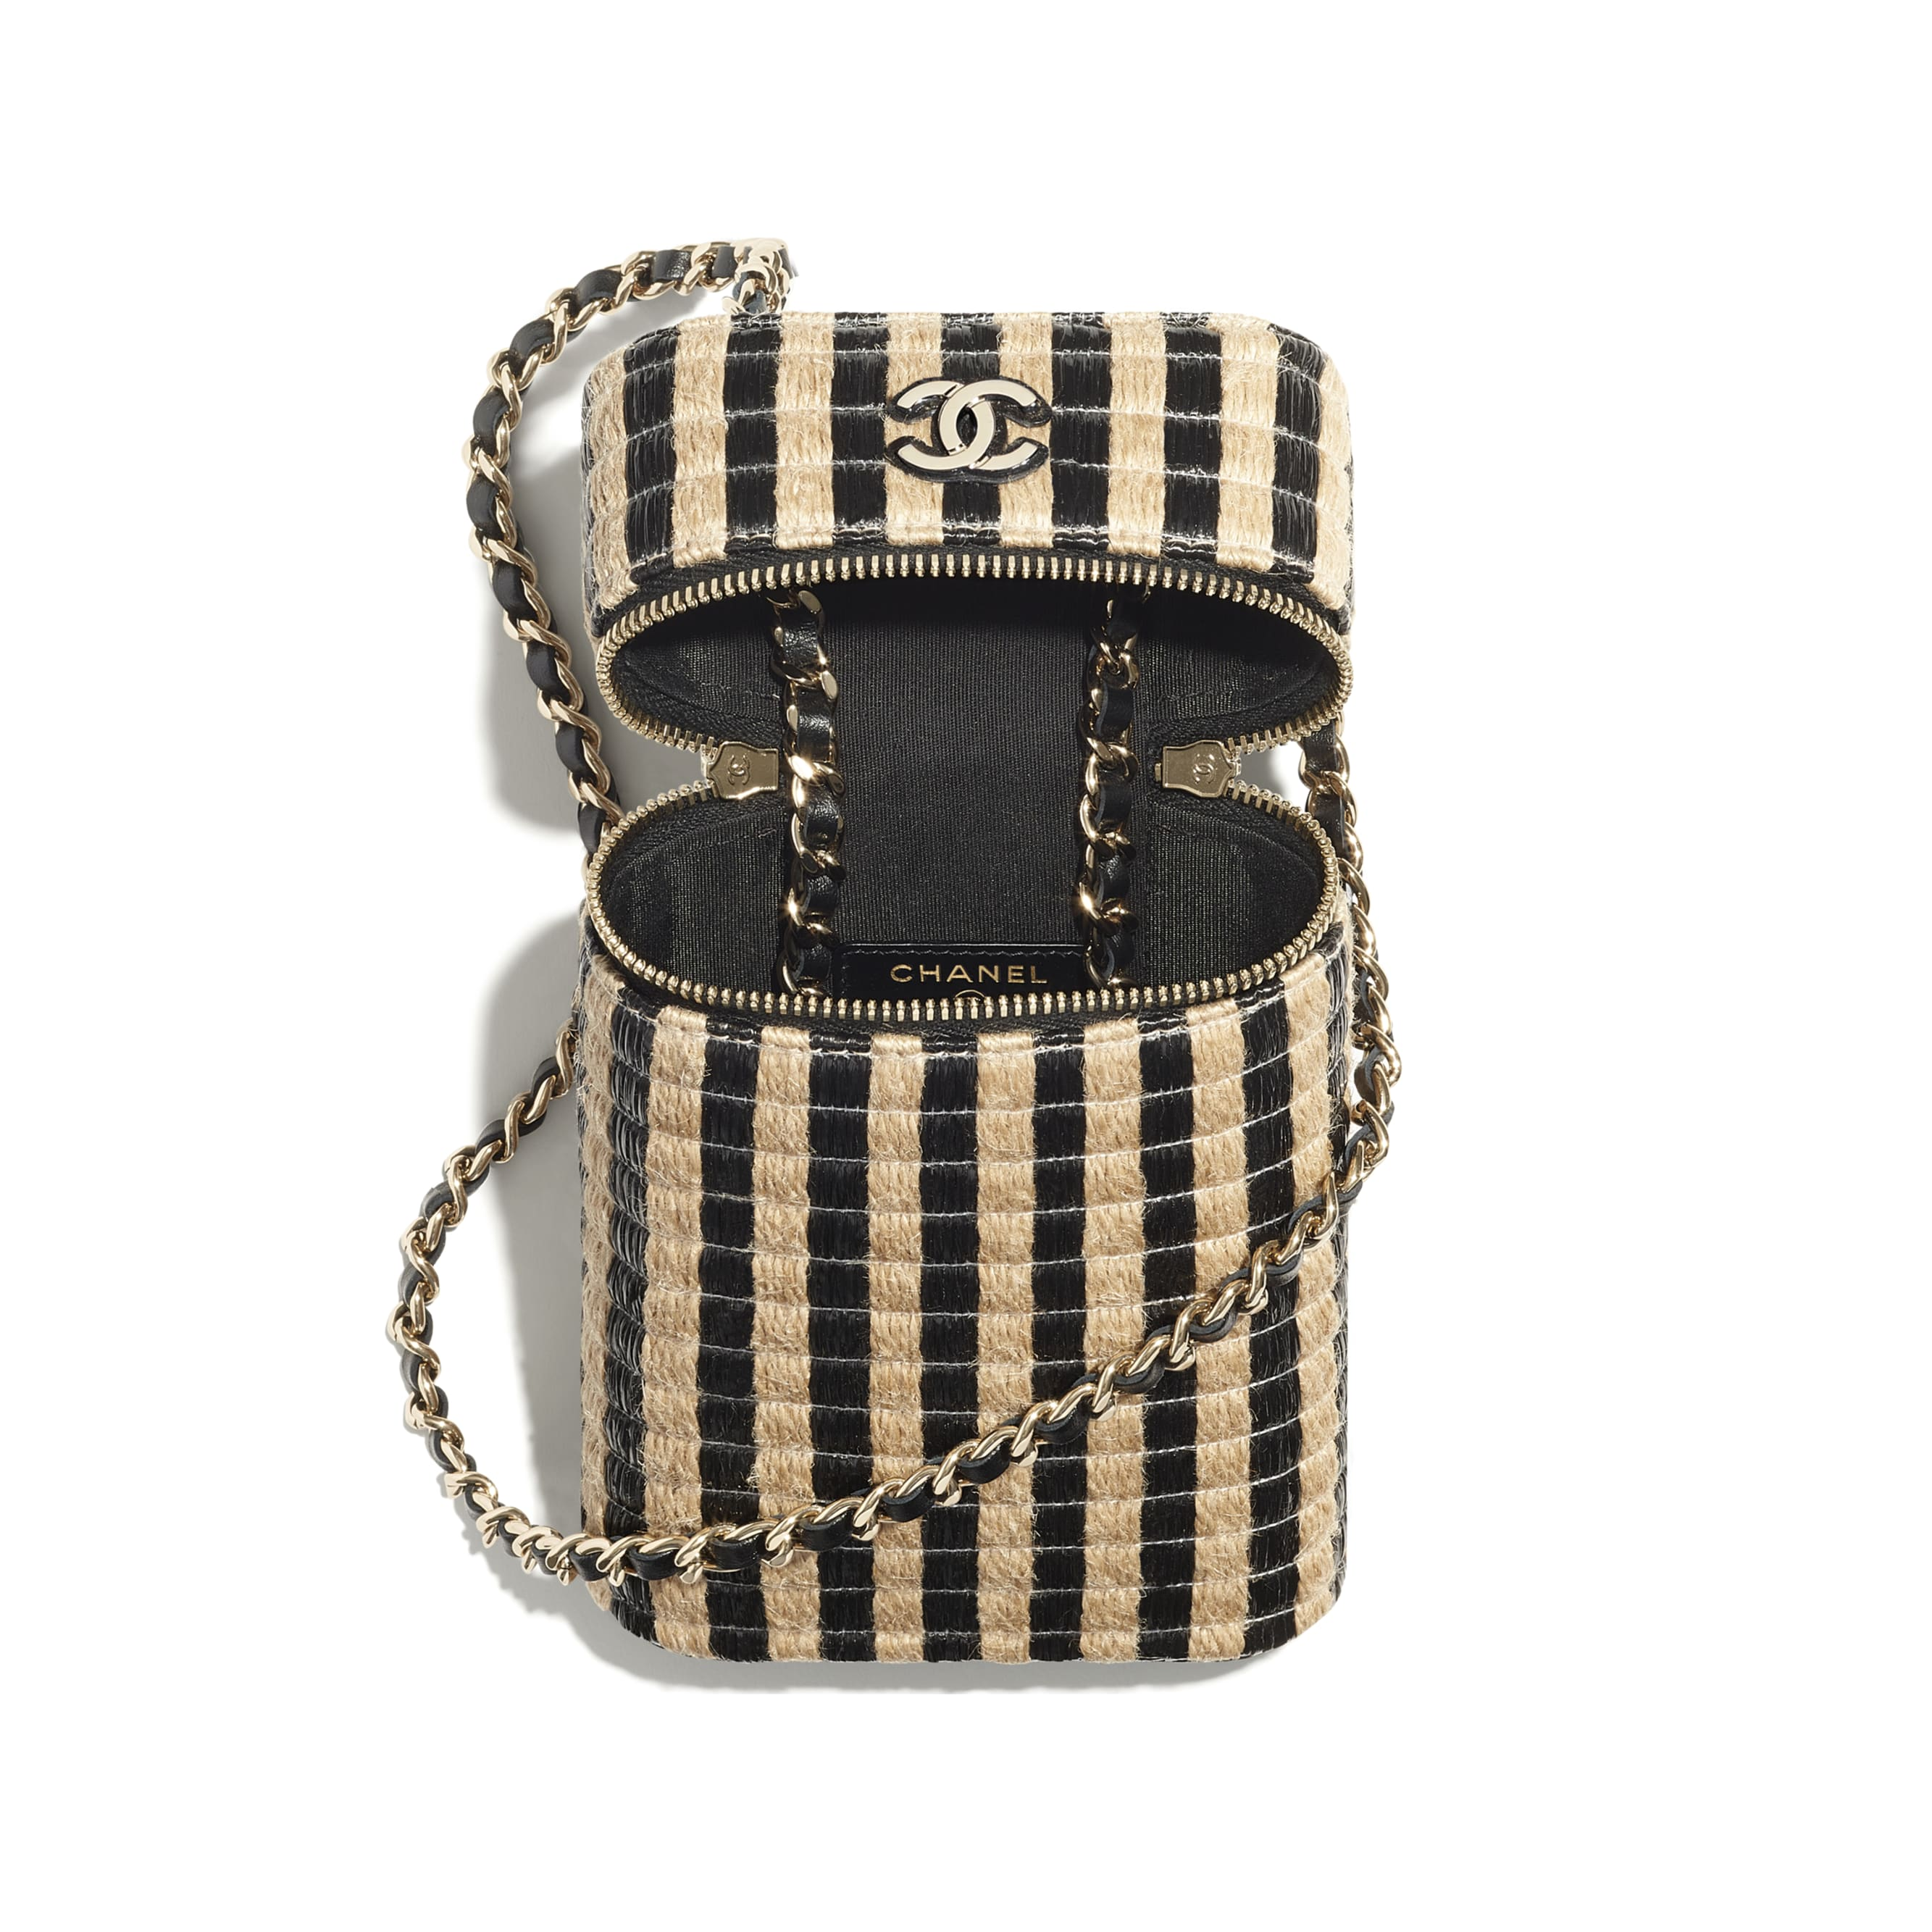 Vanity Phone Holder with Chain - Black & Beige - Raffia, Jute Thread & Gold-Tone Metal - CHANEL - Alternative view - see standard sized version